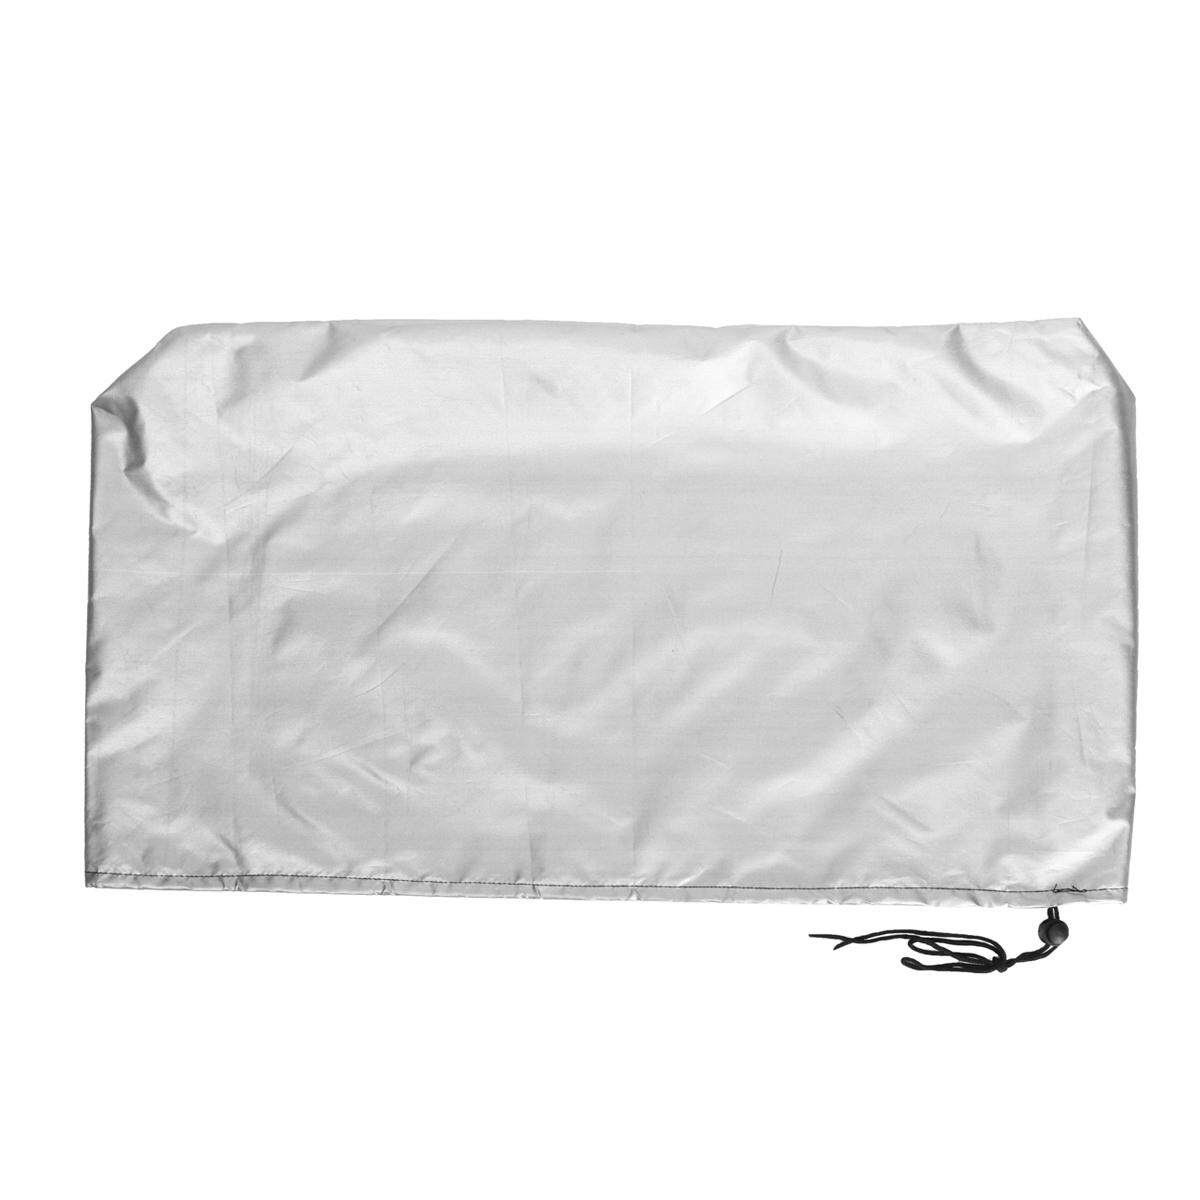 Computer Flat Screen Monitor Dust Cover LED PC TV 19-21 Inch Laptop Protectors #white